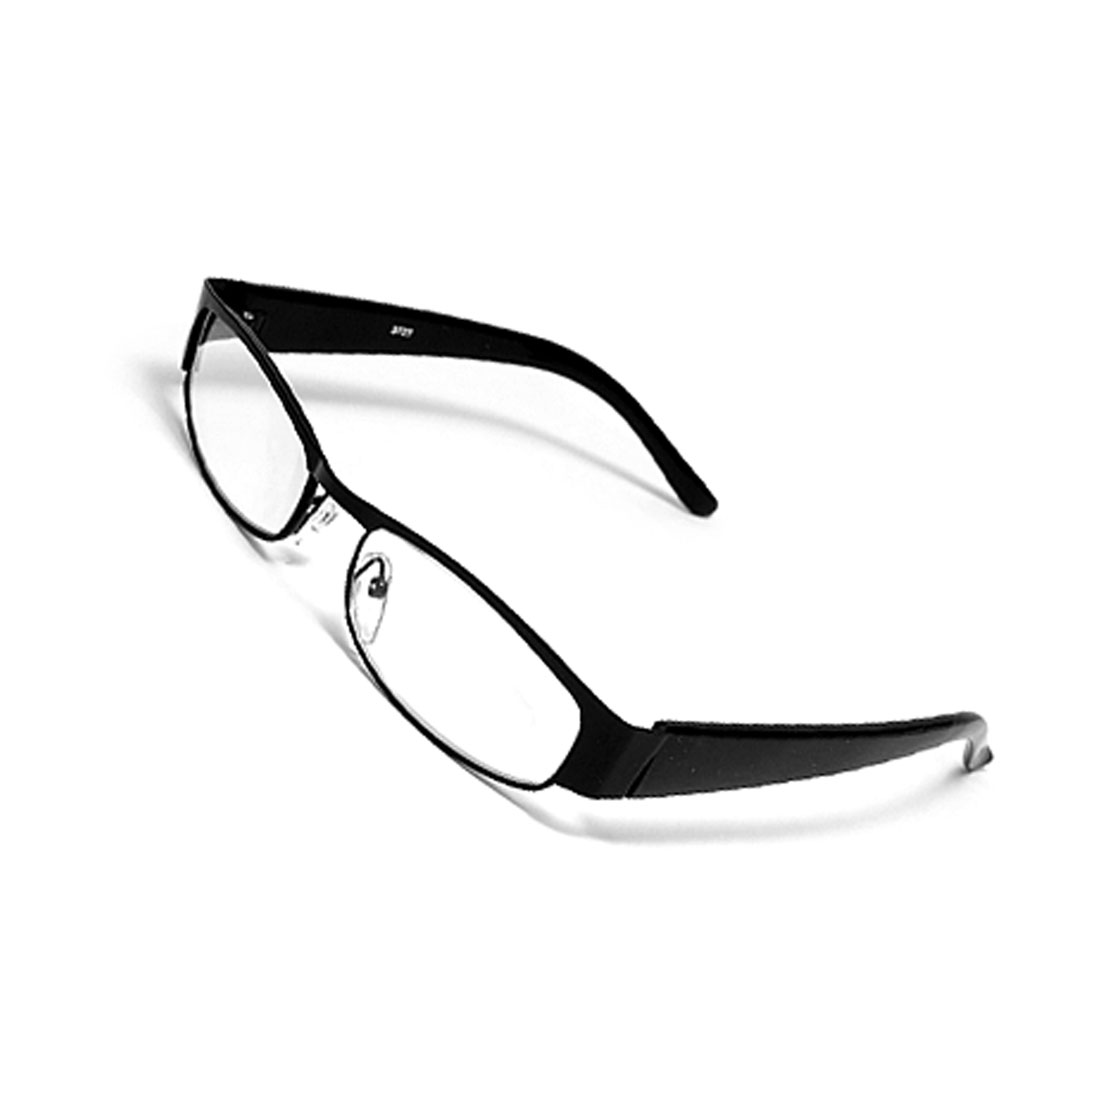 Unisex Full Rim +2.50 Reader Optical Reading Glasses